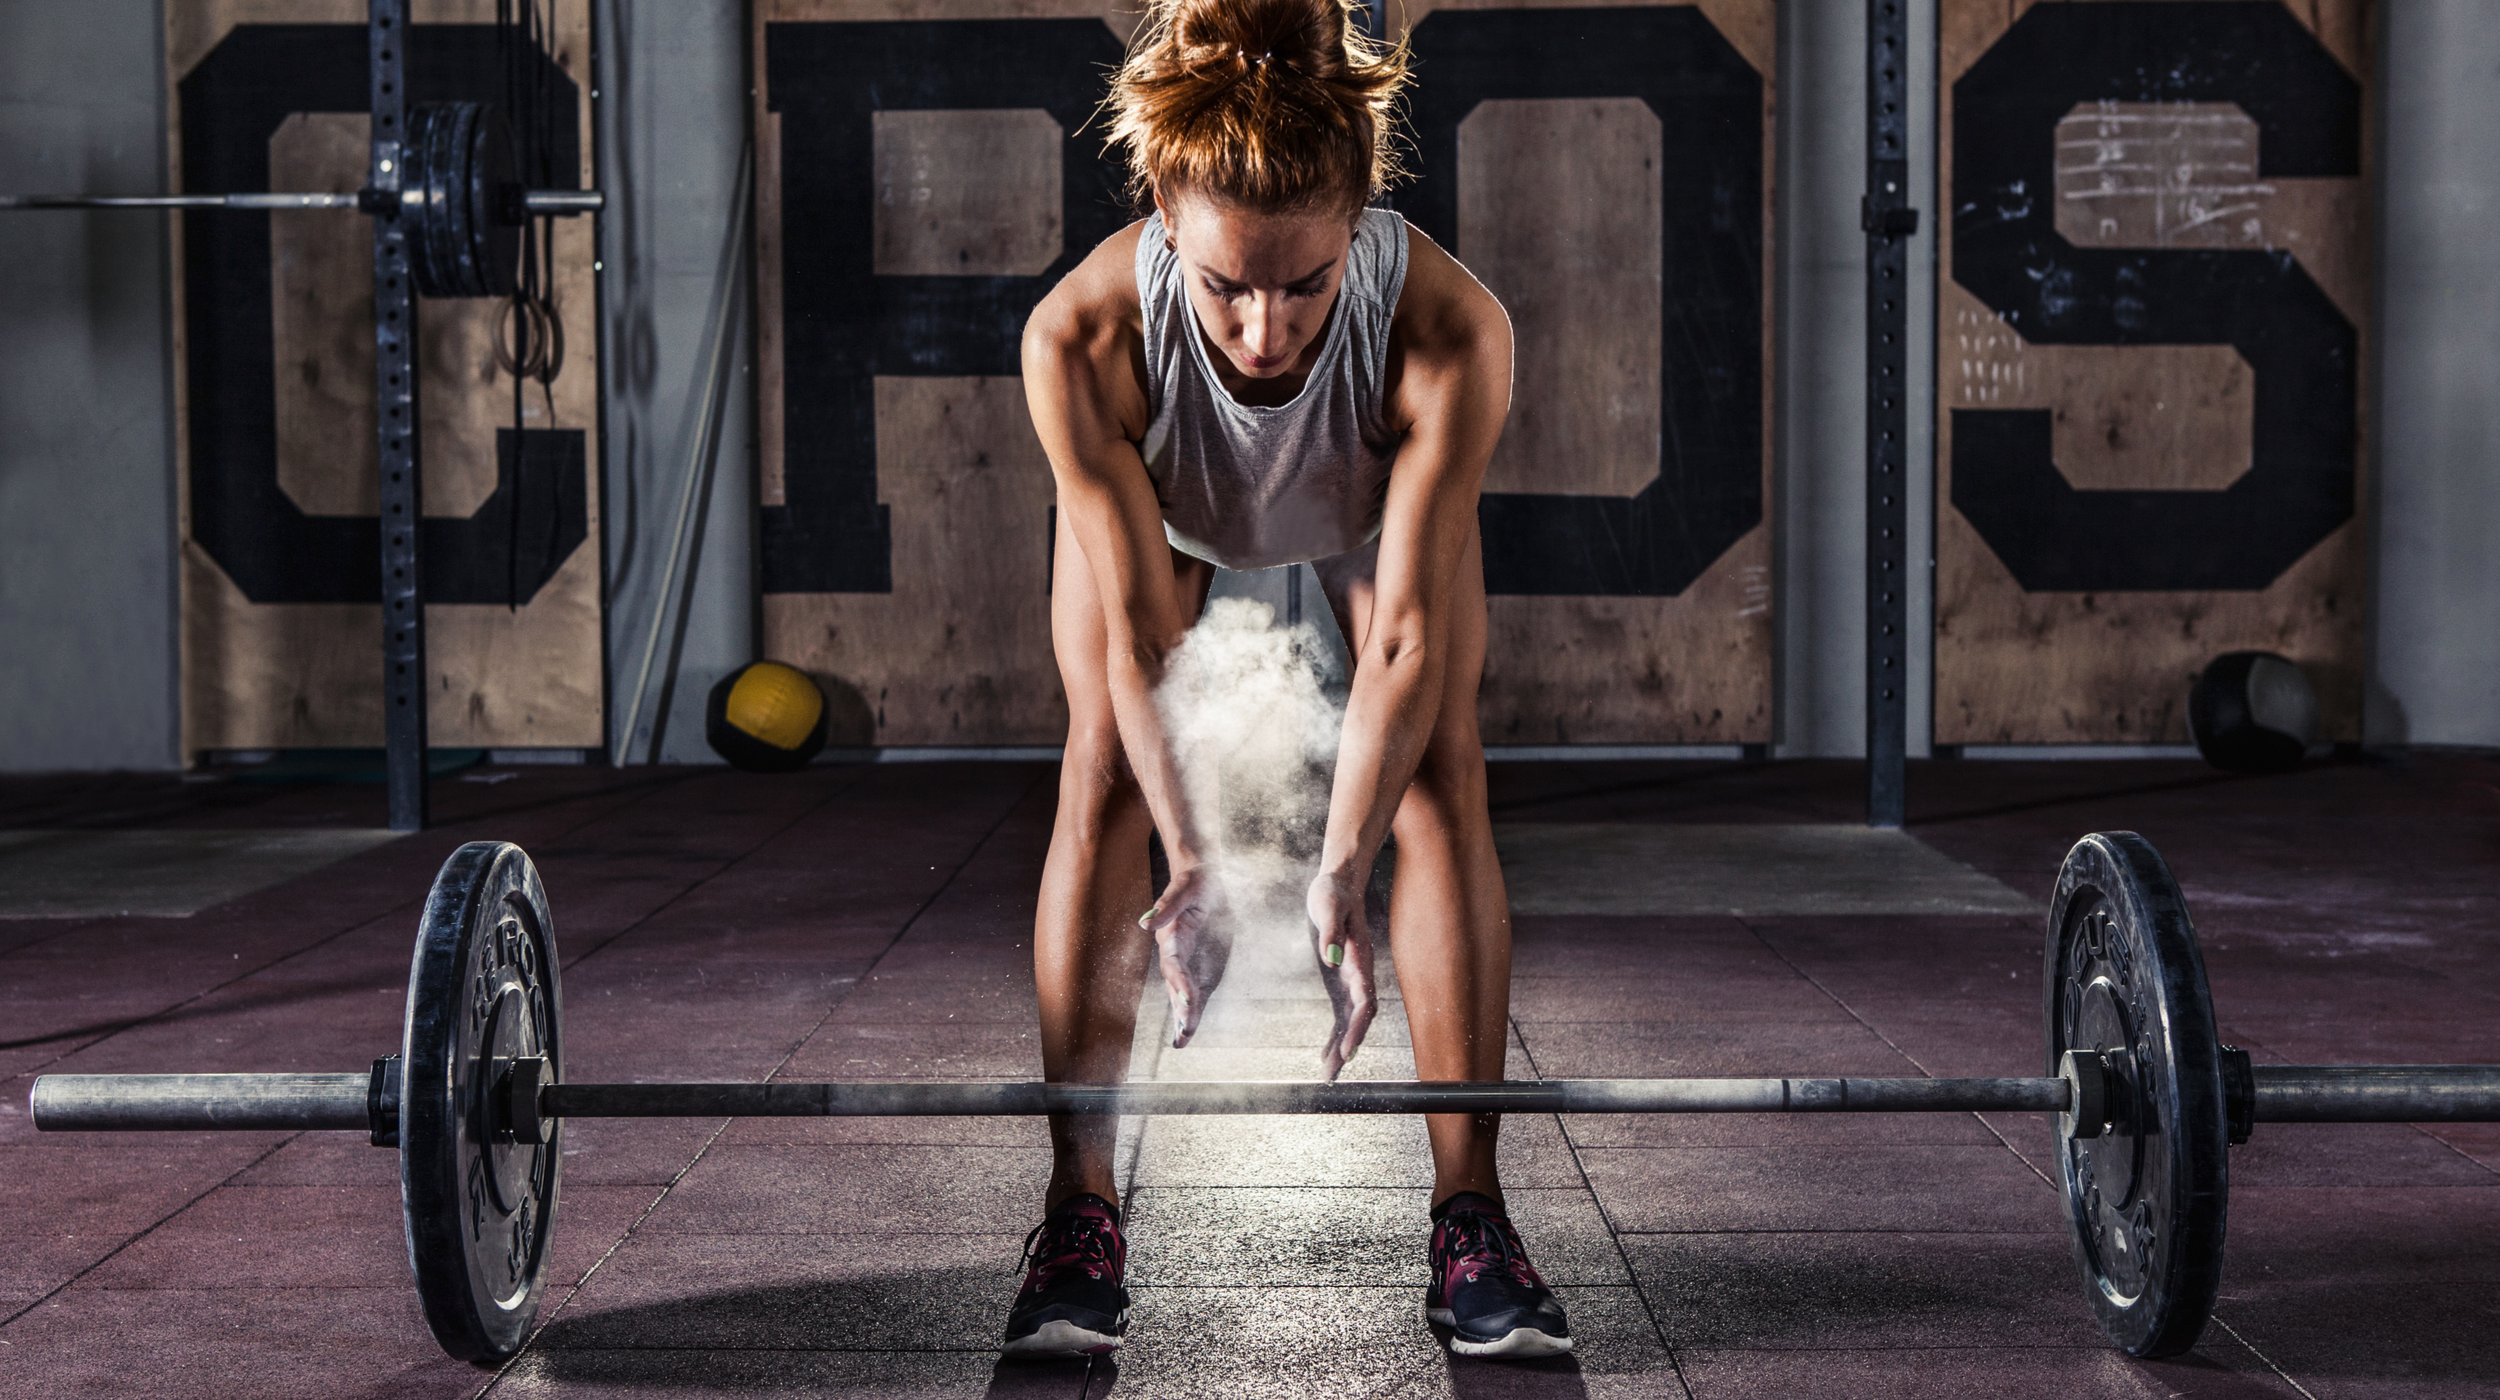 Why Should Women Incorporate Resistance Training Into Their Workout Routine?